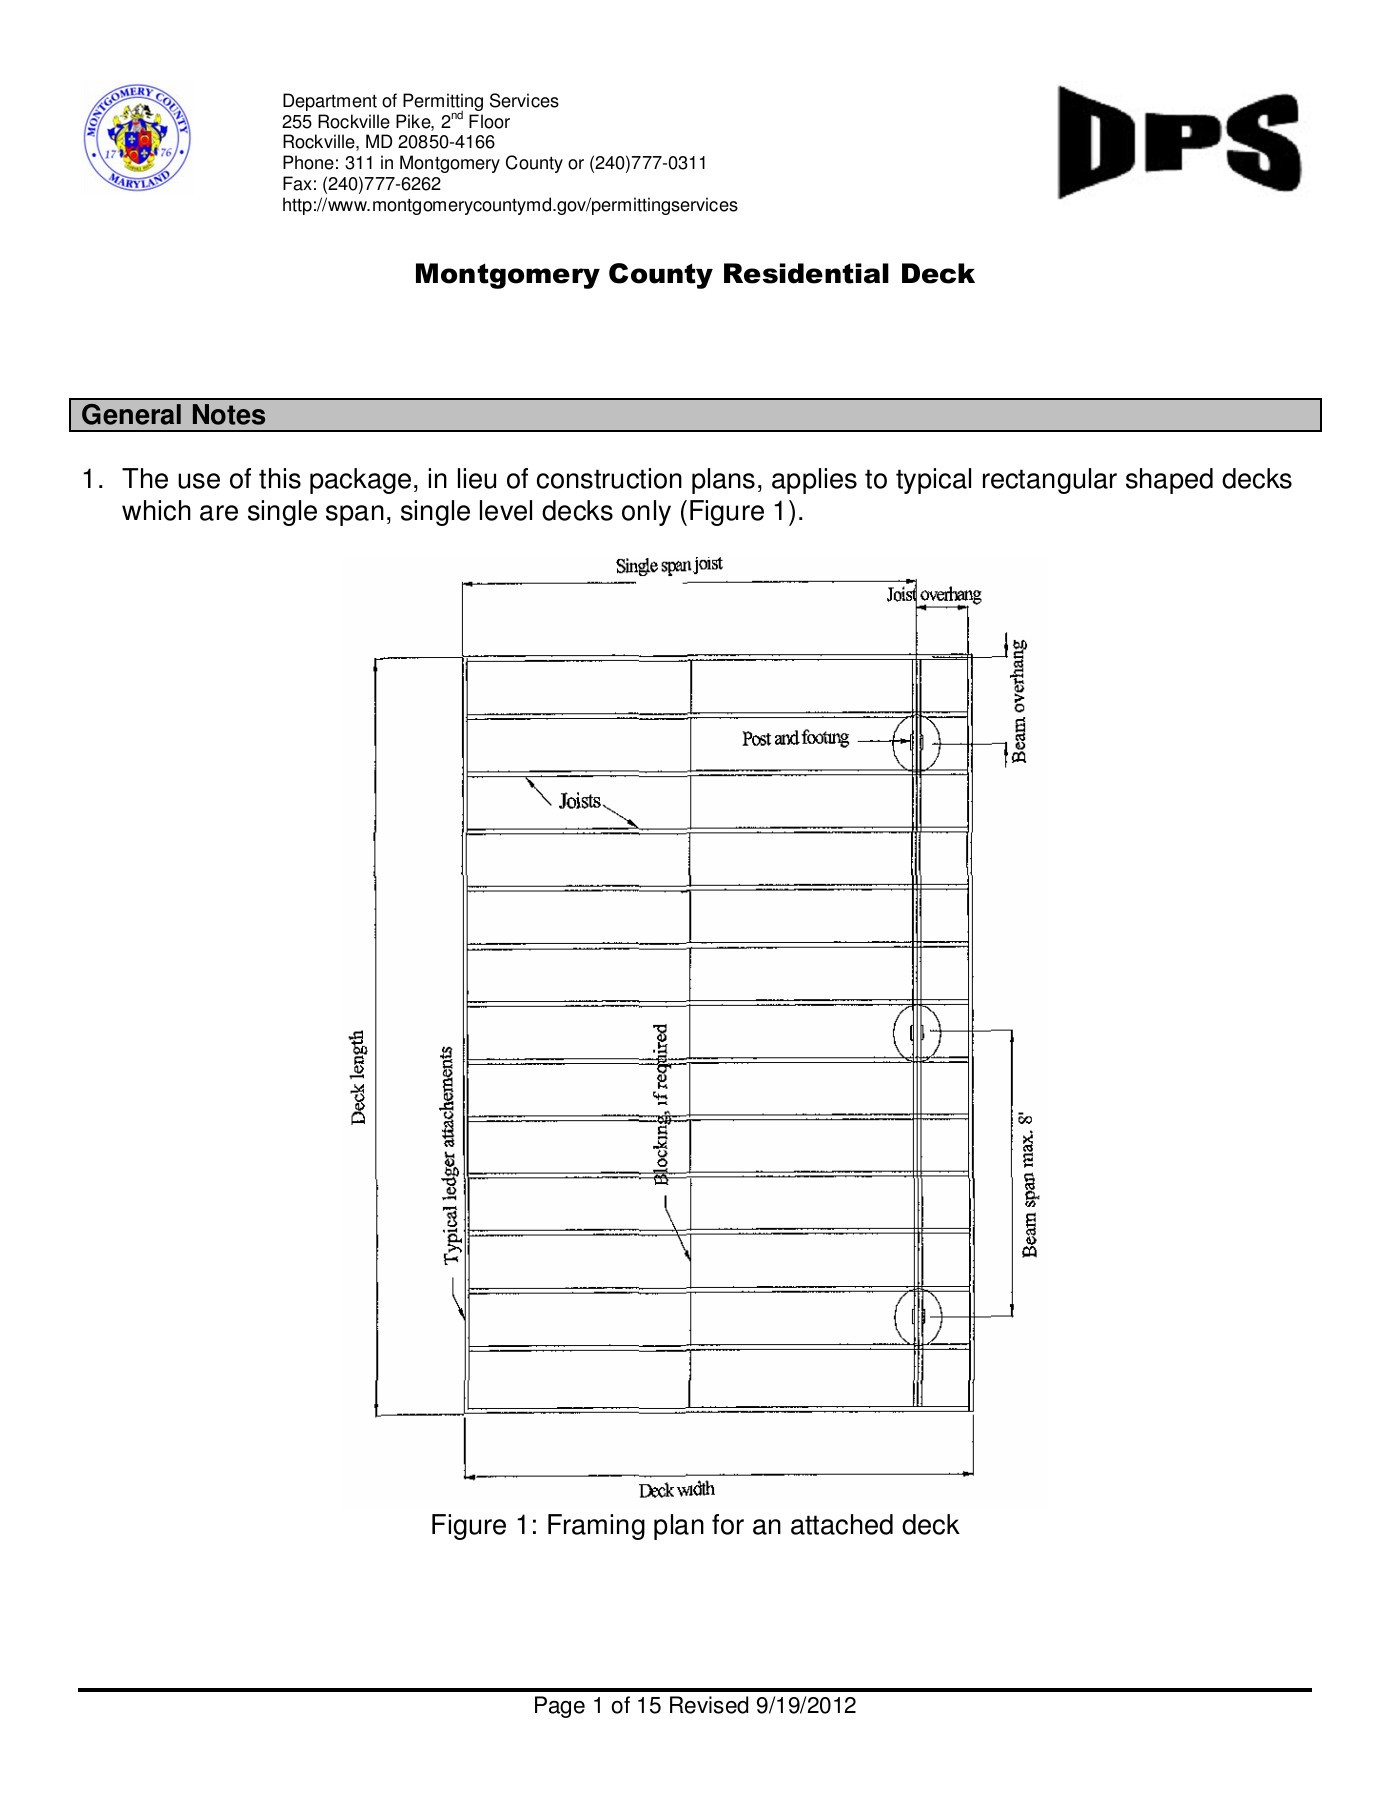 Montgomery County Residential Deck - DPS Home Page | FlipHTML5